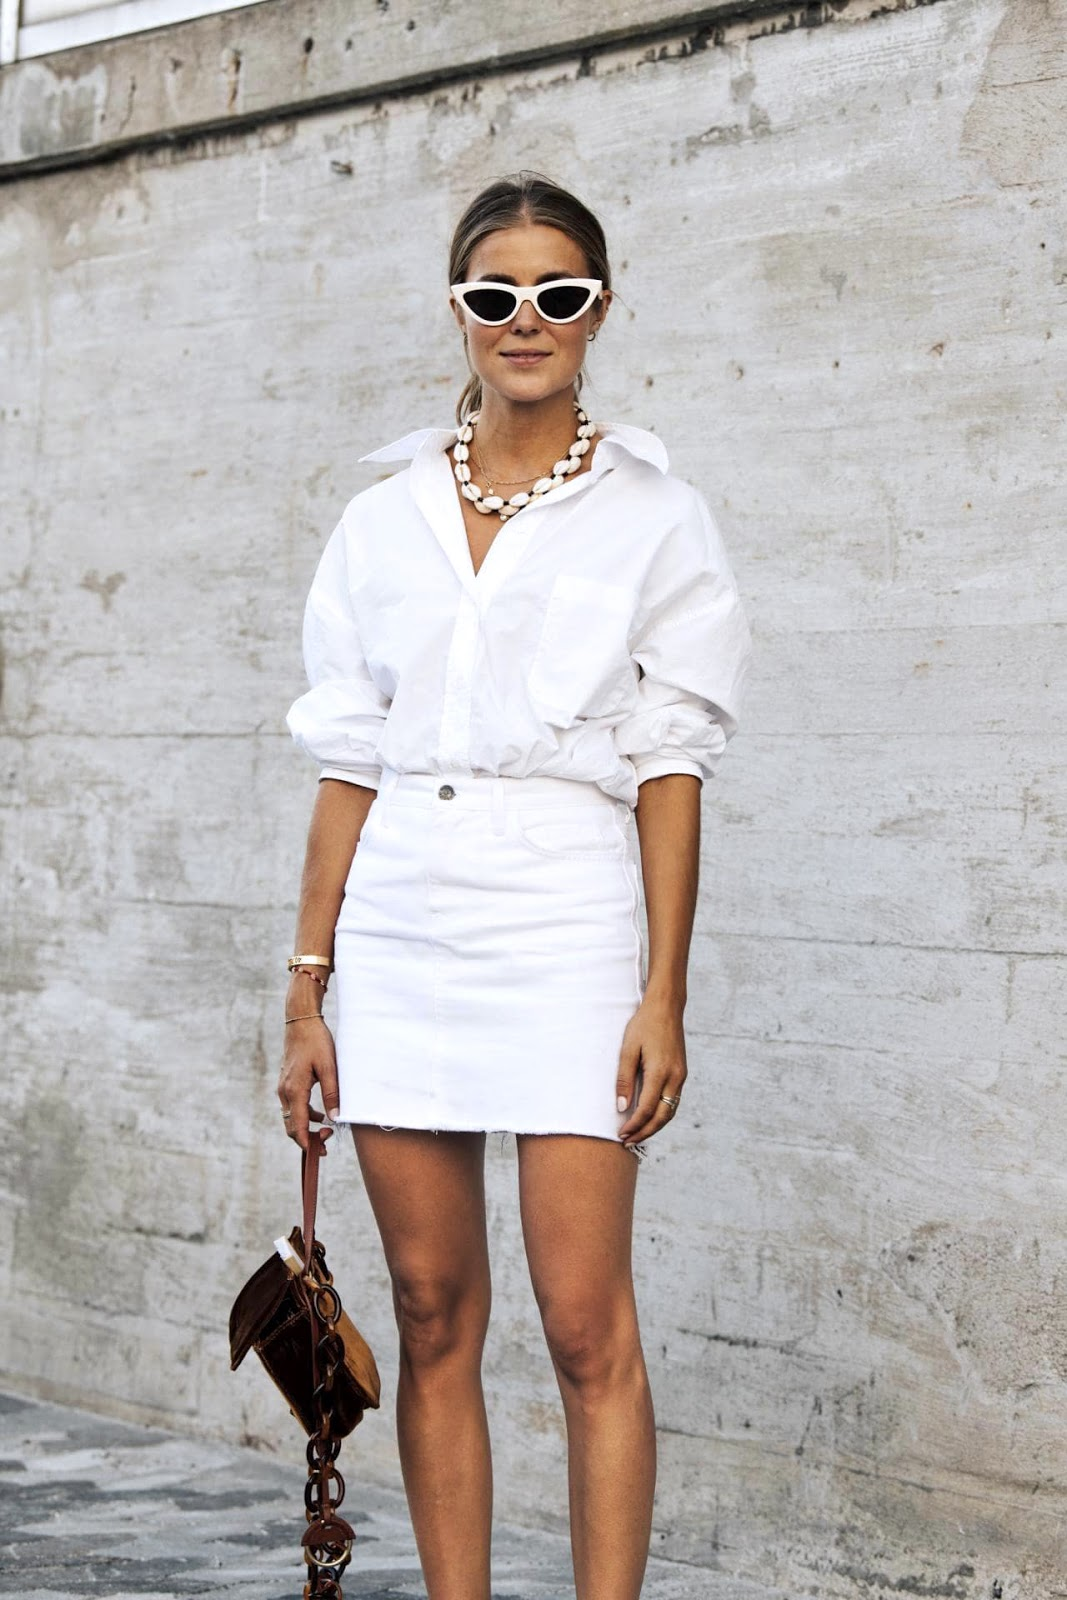 All-White Summer Outfit — Scandi-girl street style with cat-eye sunglasses, shell necklace, button-down shirt, and denim skirt